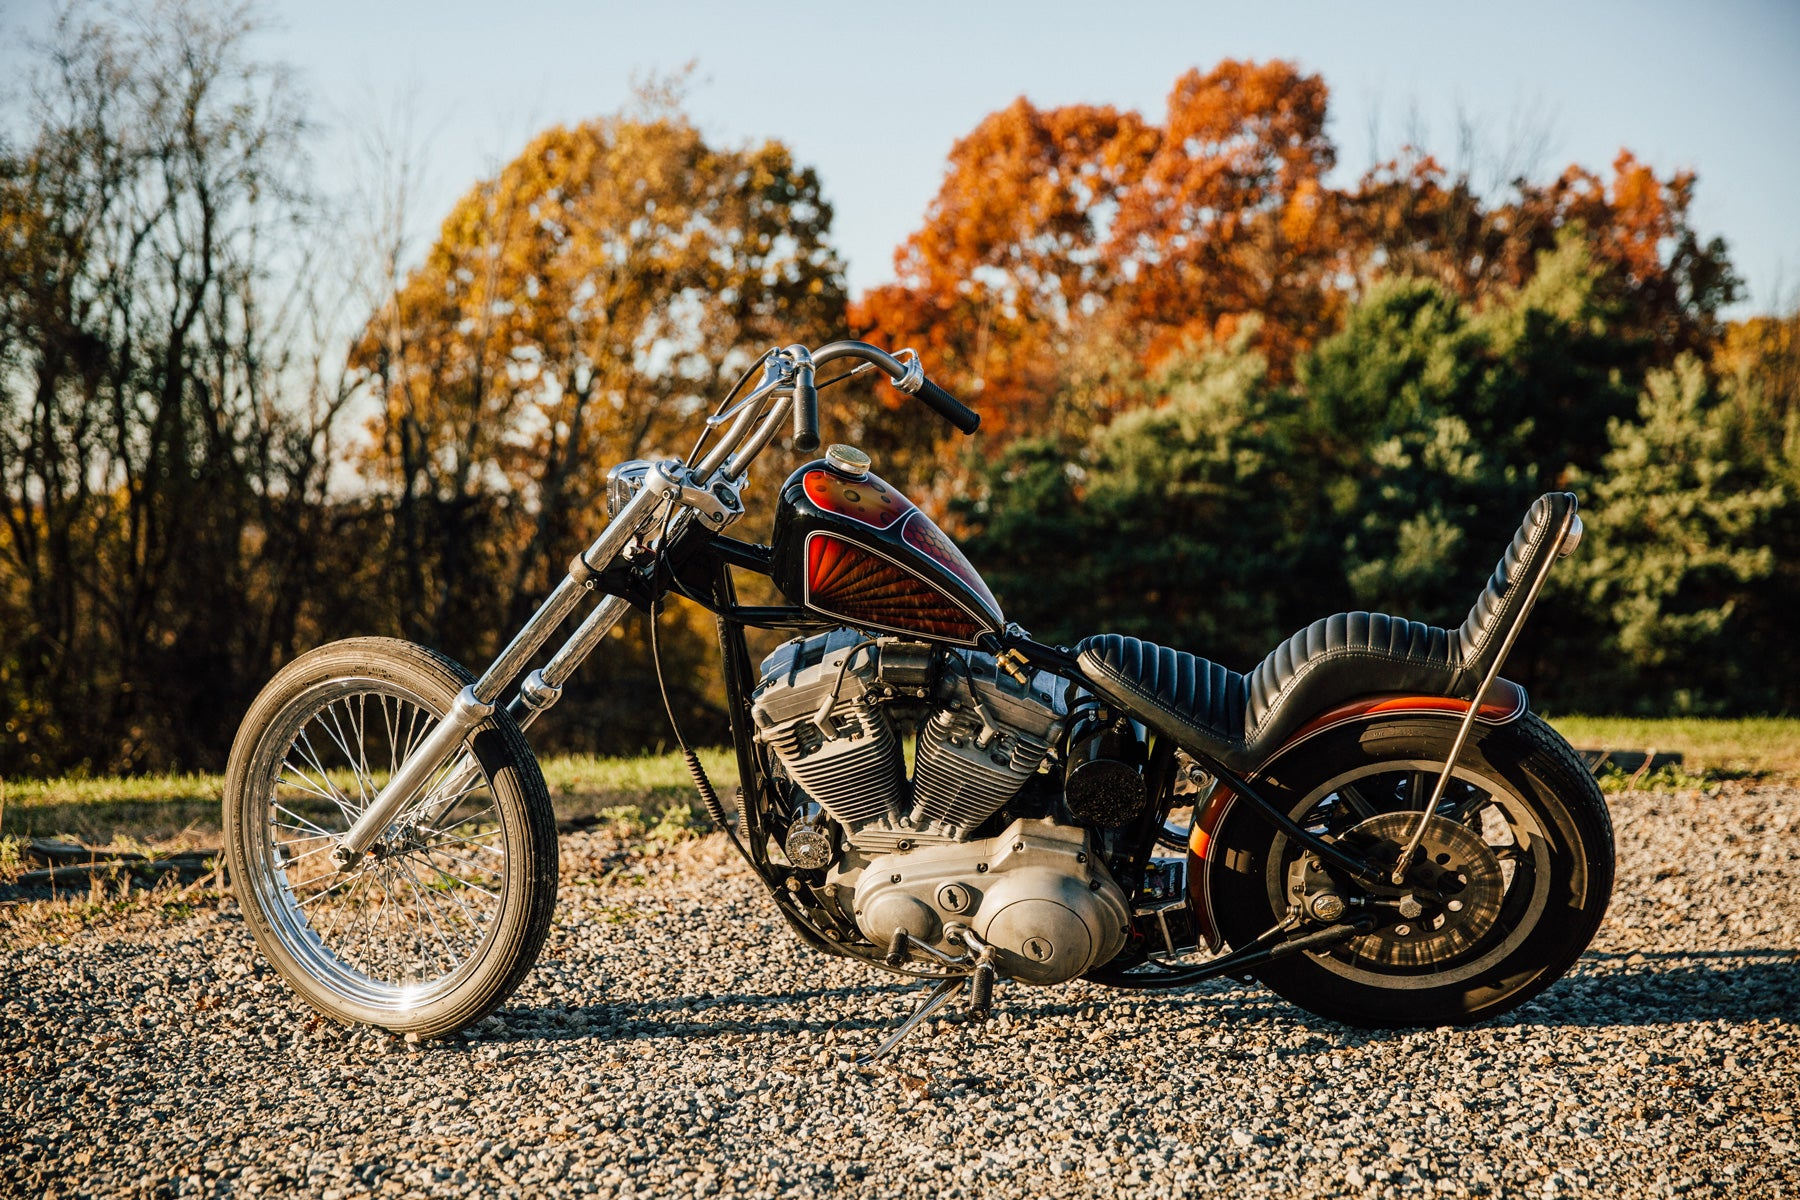 1988 Harley-Davidson Sportster Chopper Motorcycle Pittsburgh